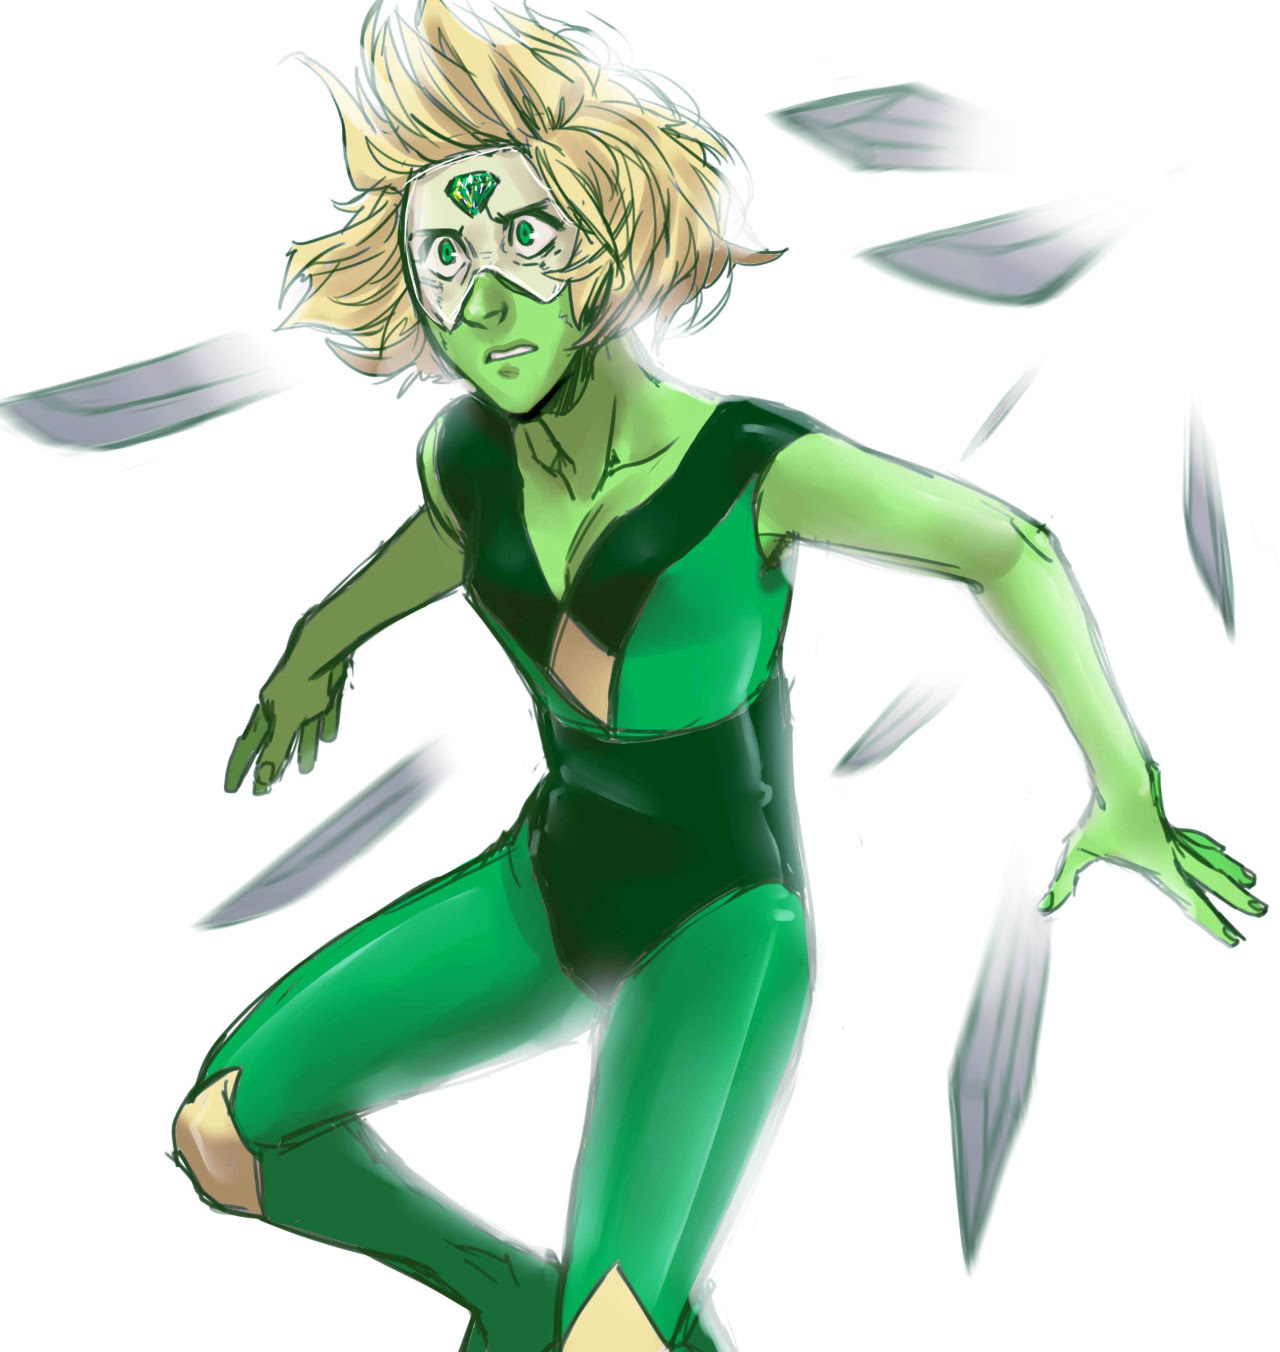 …guess who get hyped by the latest episodes give me more warrior!Peridot please